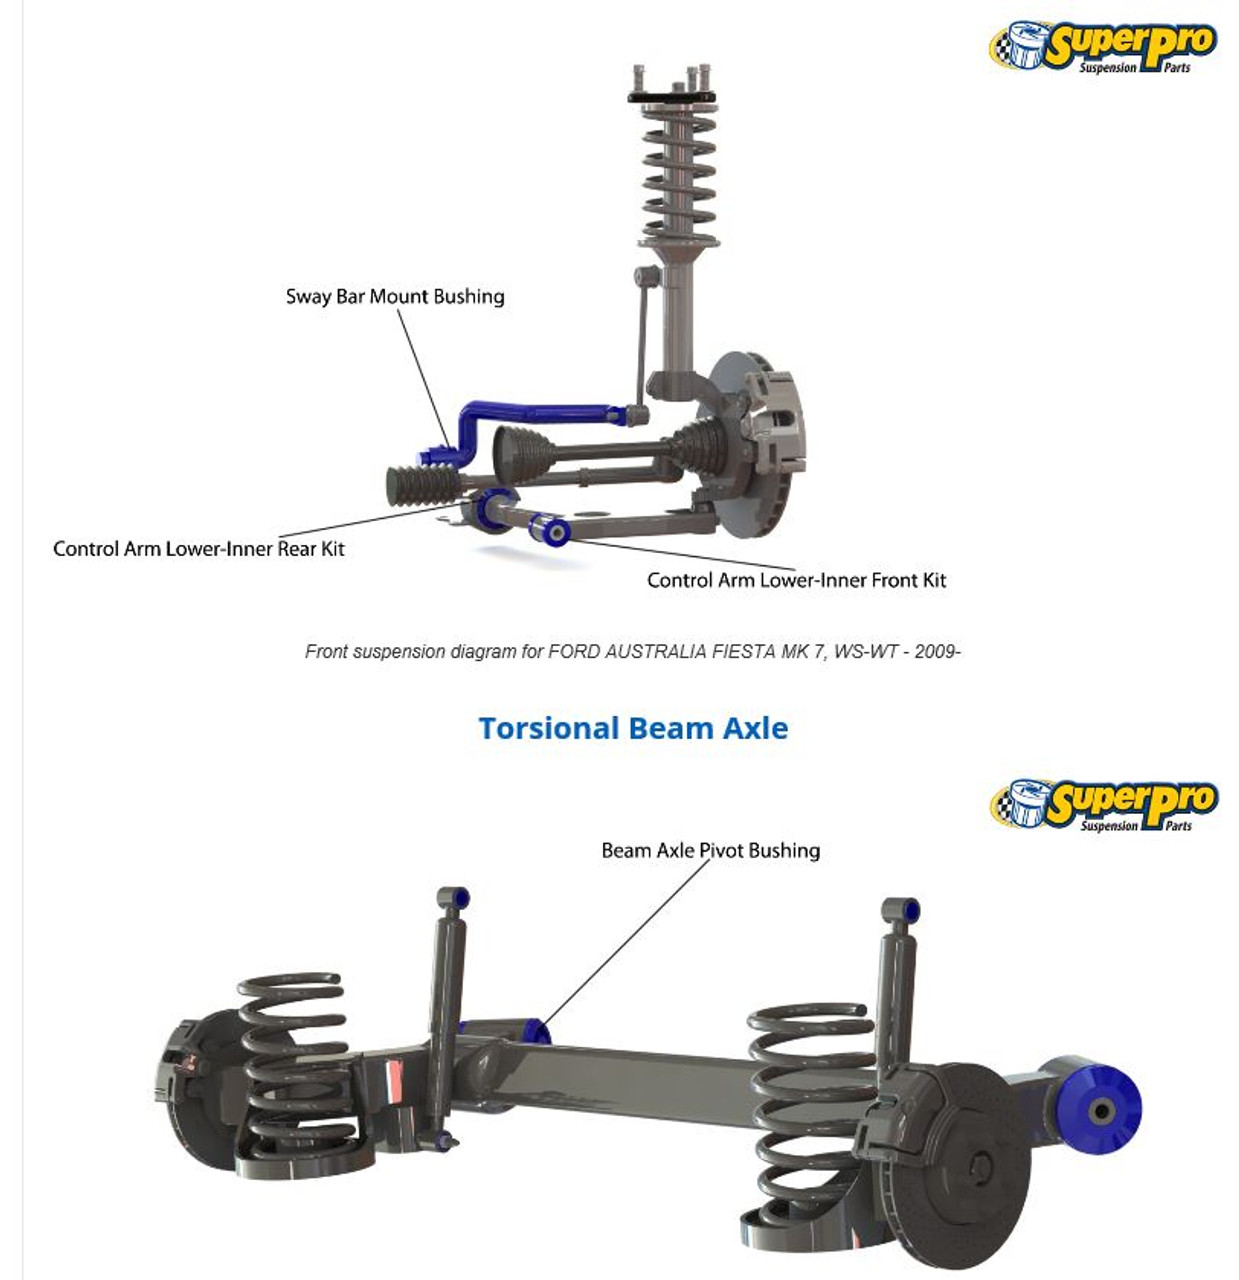 Stance Street Coilovers Suspension Kit Ford Fiesta Mk 7 Mk7.5 FITS ALL ENGINES